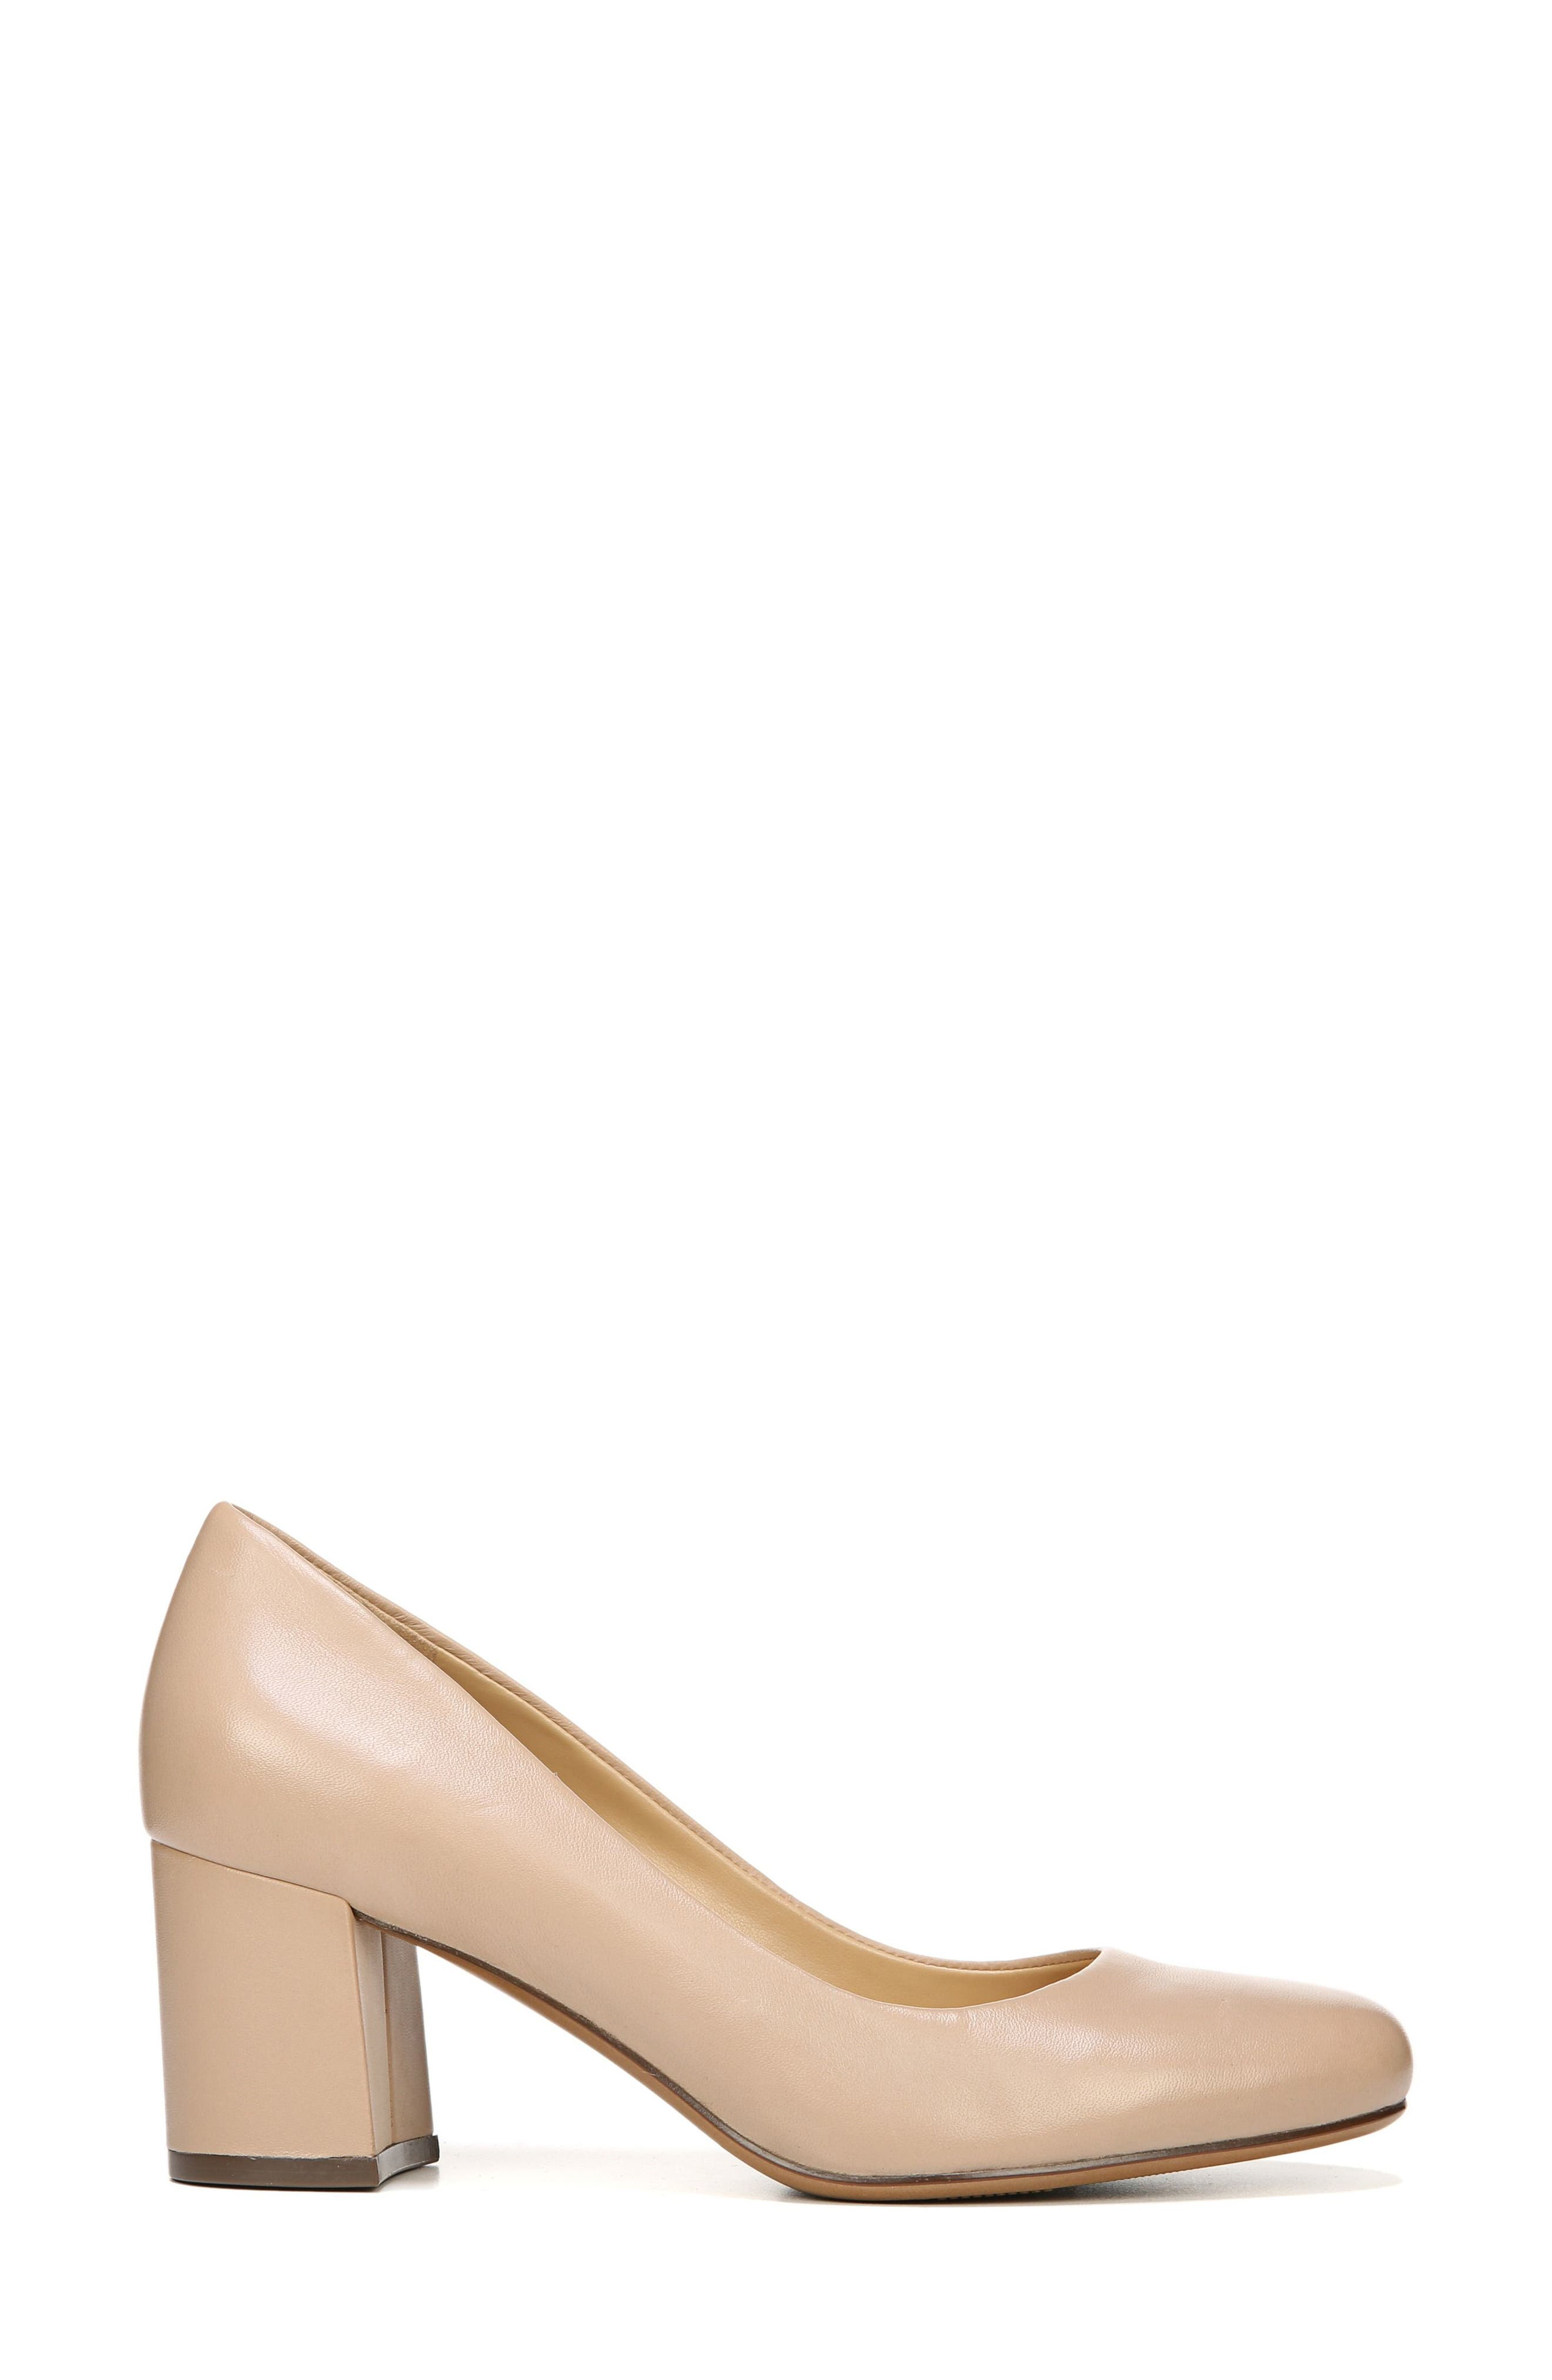 Whitney Pump,                             Alternate thumbnail 3, color,                             TENDER TAUPE LEATHER